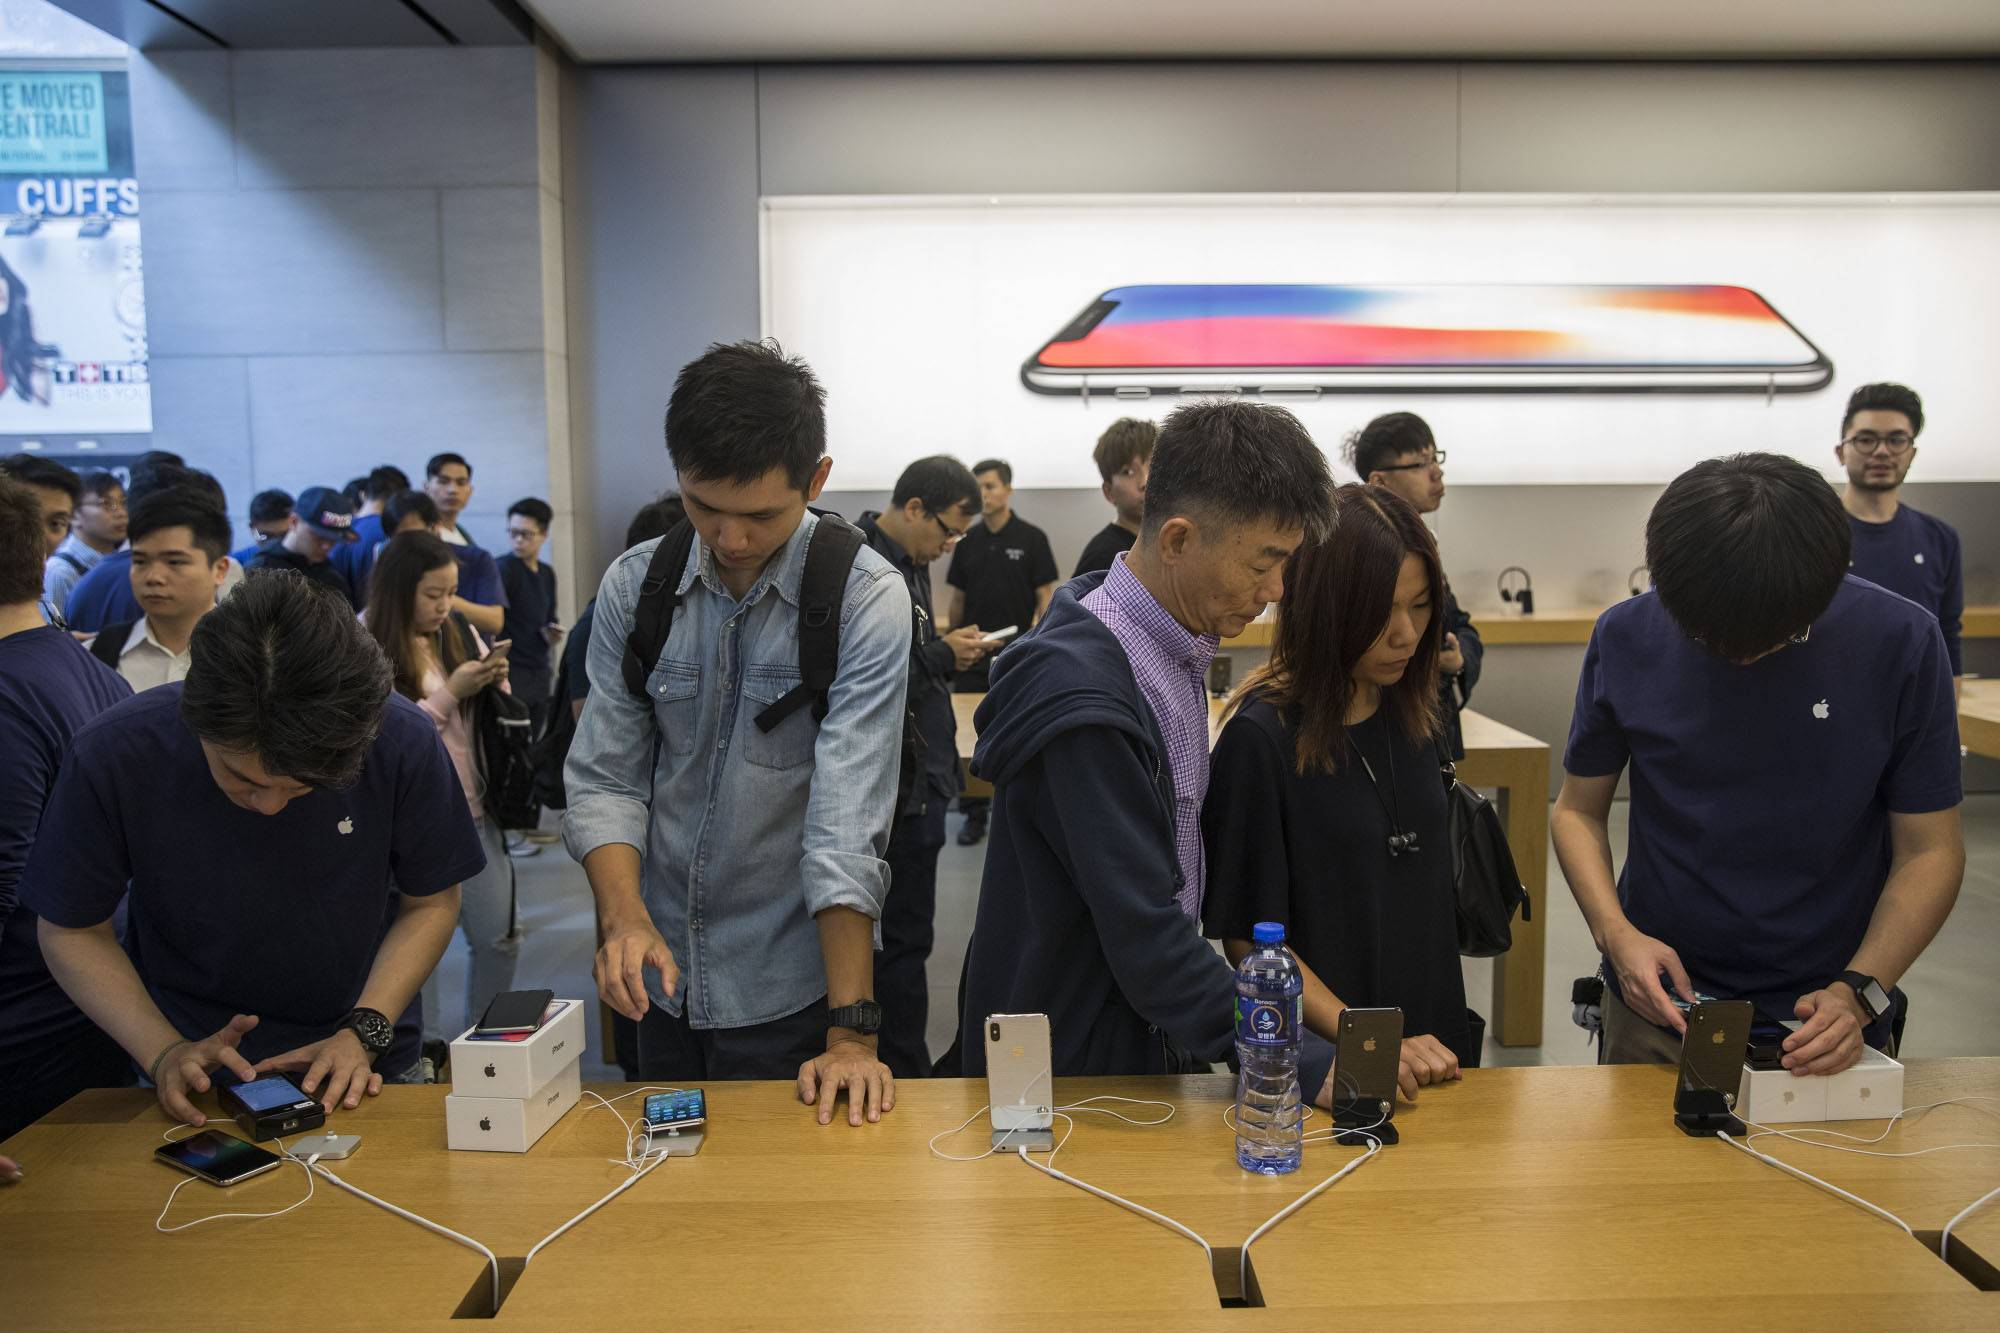 Employees assist customers purchasing the Apple iPhone X at an Apple store during its launch in Hong Kong.